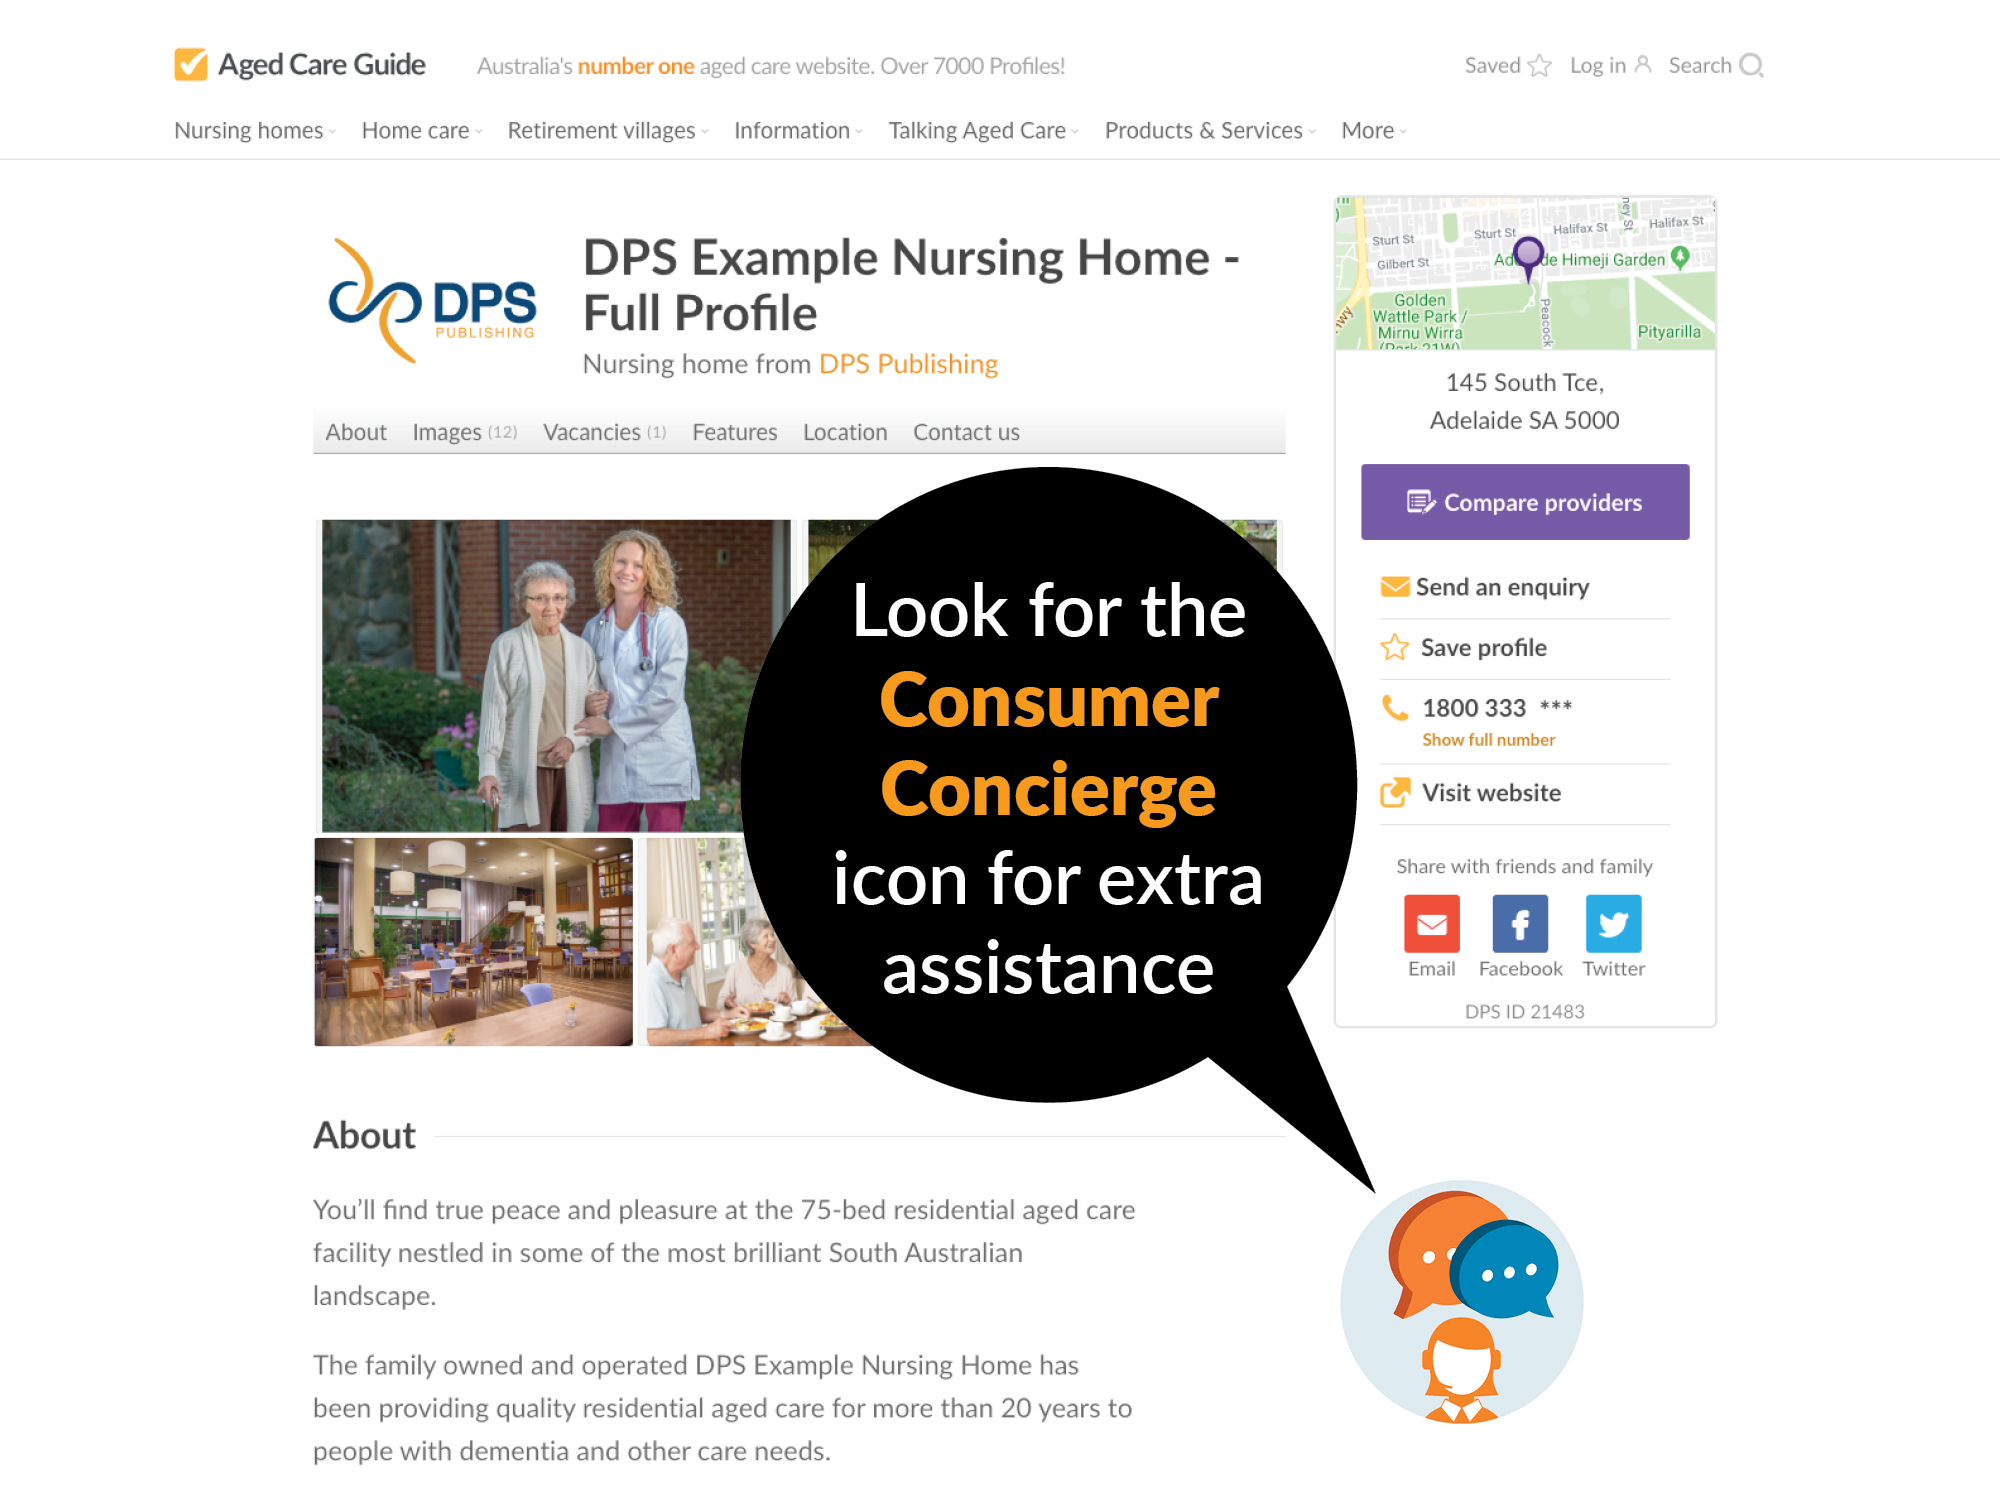 You'll find the Consumer Concierge feature on all listings on AgedCareGuide.com.au